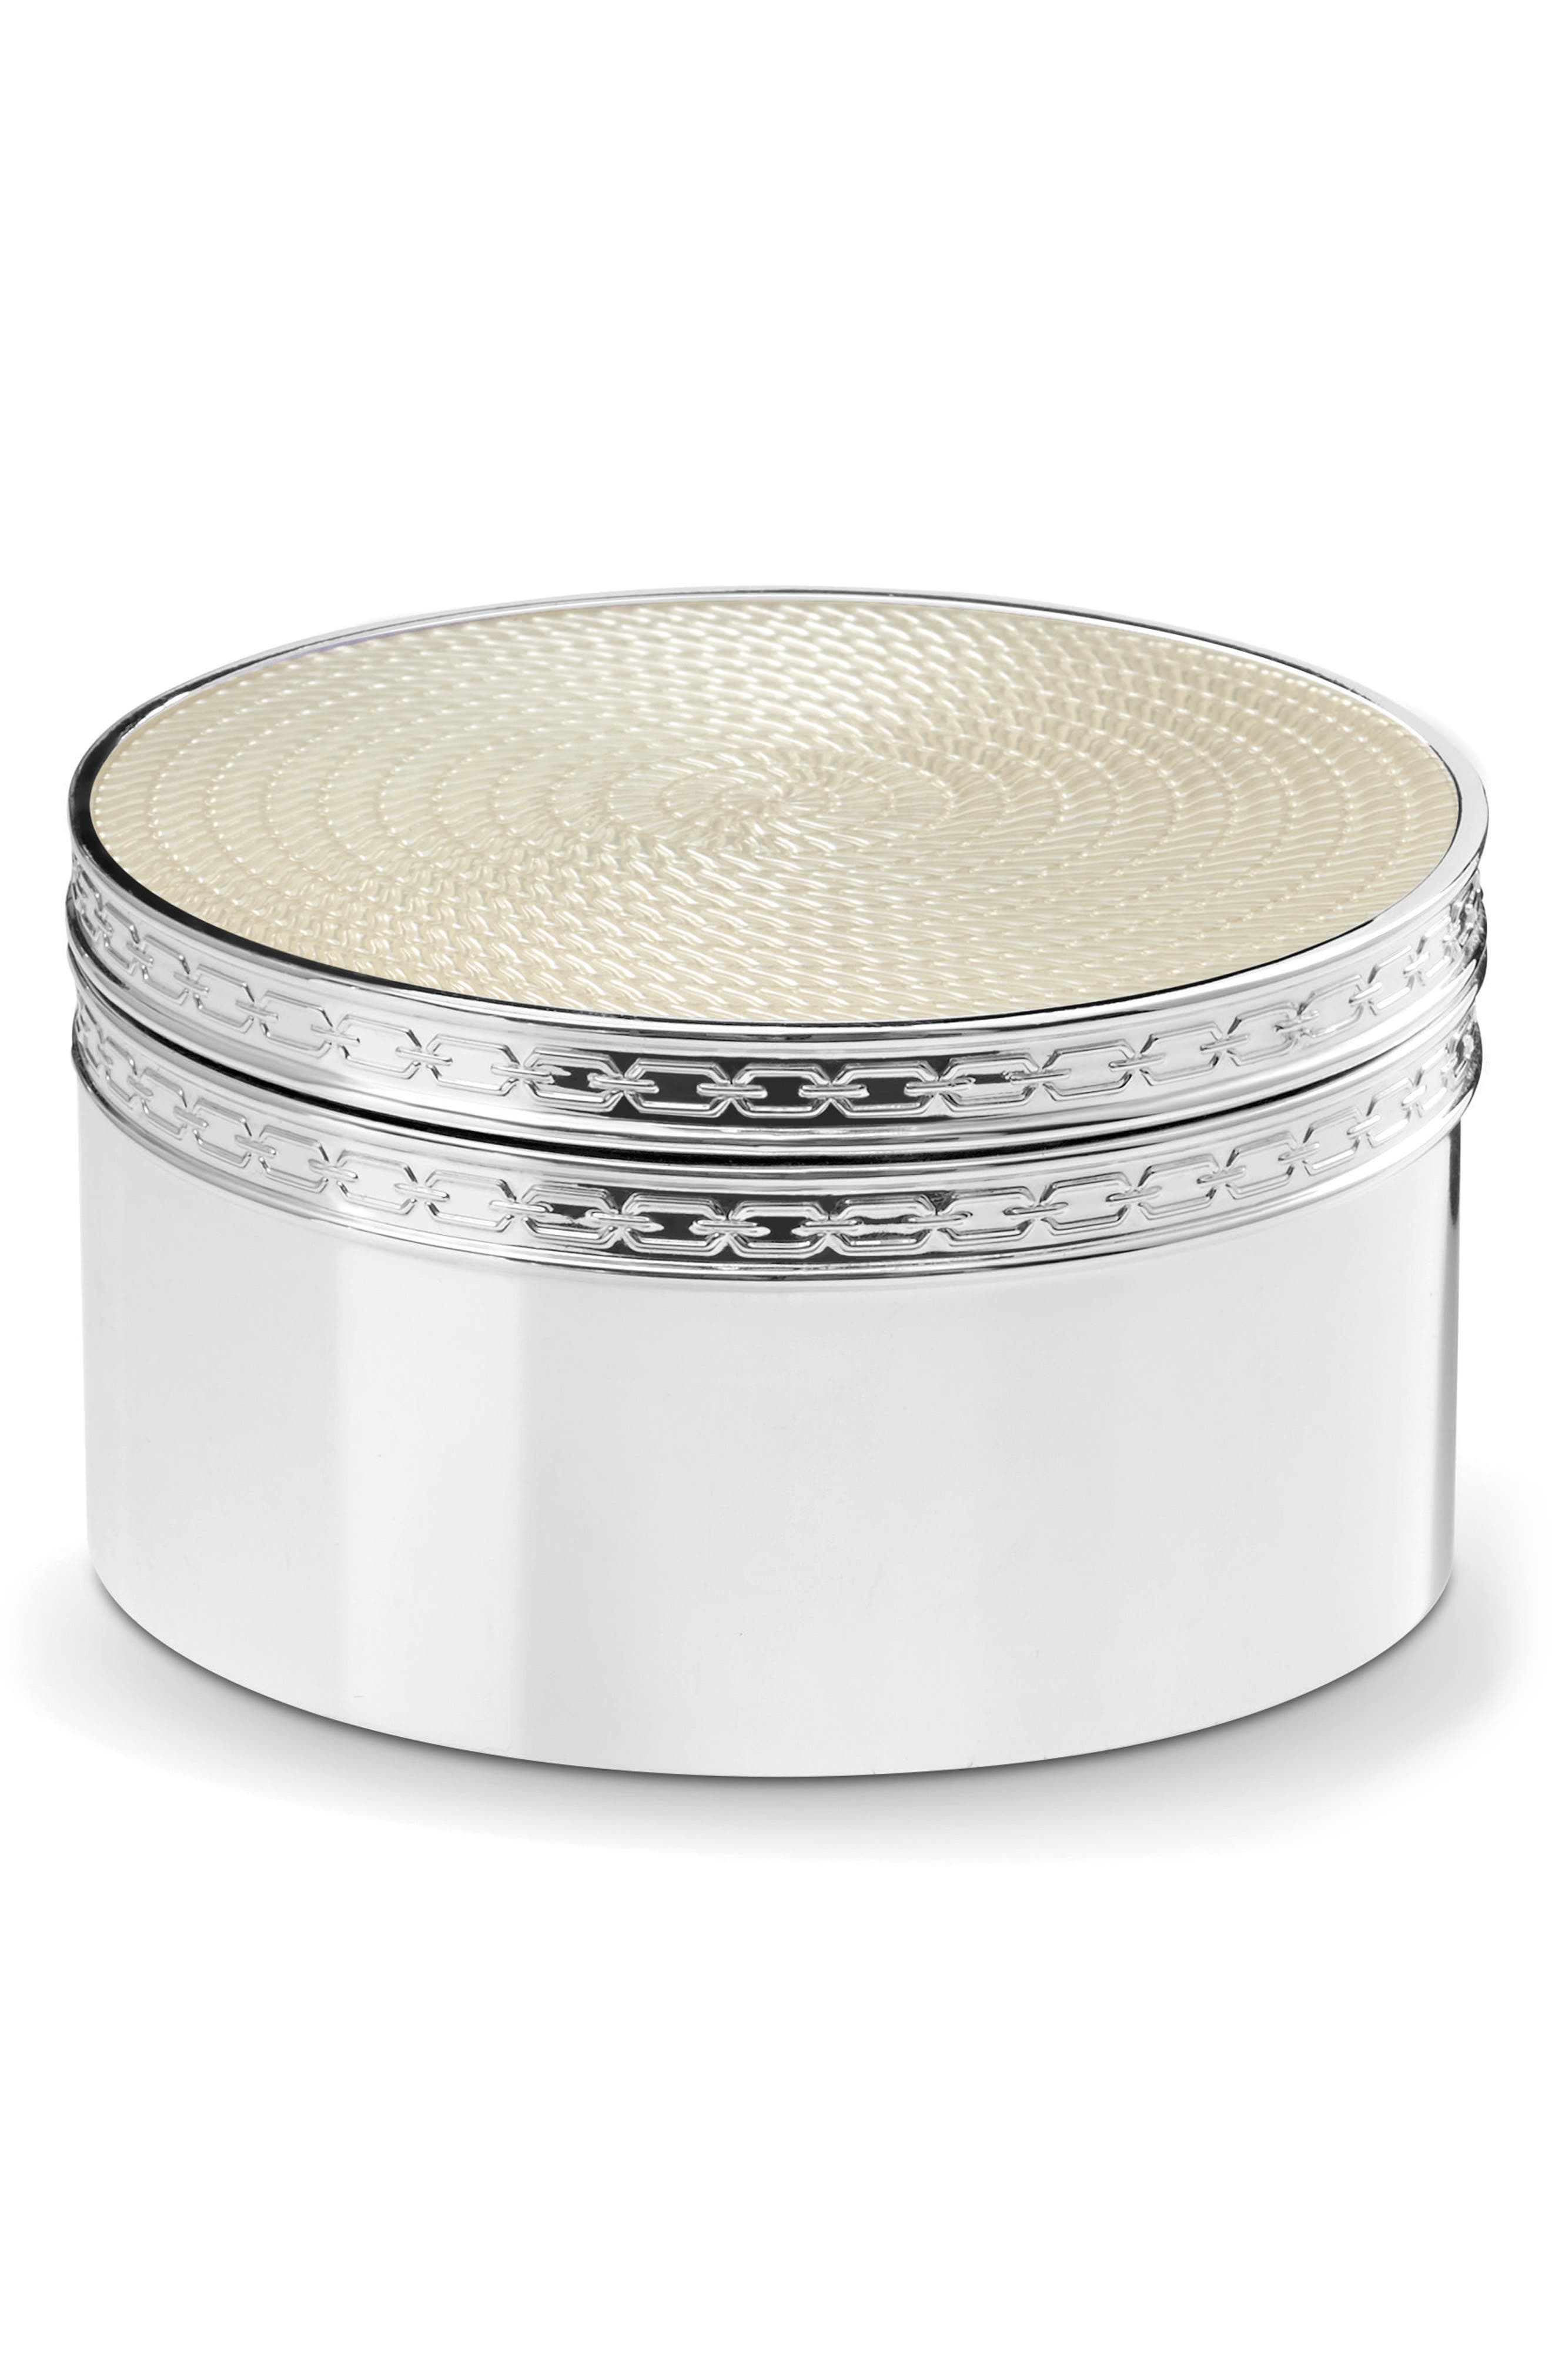 Main Image - Vera Wang x Wedgwood With Love Nouveau Trinket Box